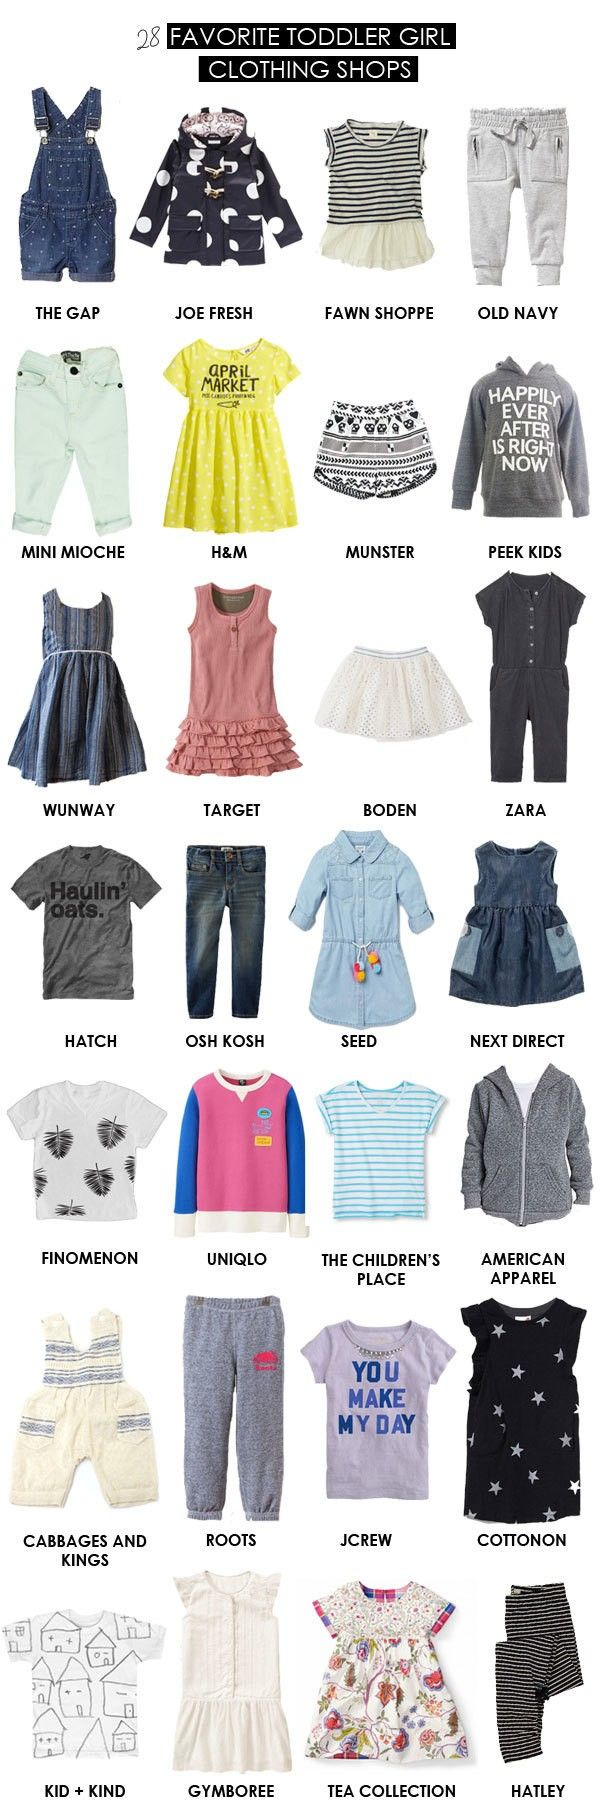 Girl Clothes Stores